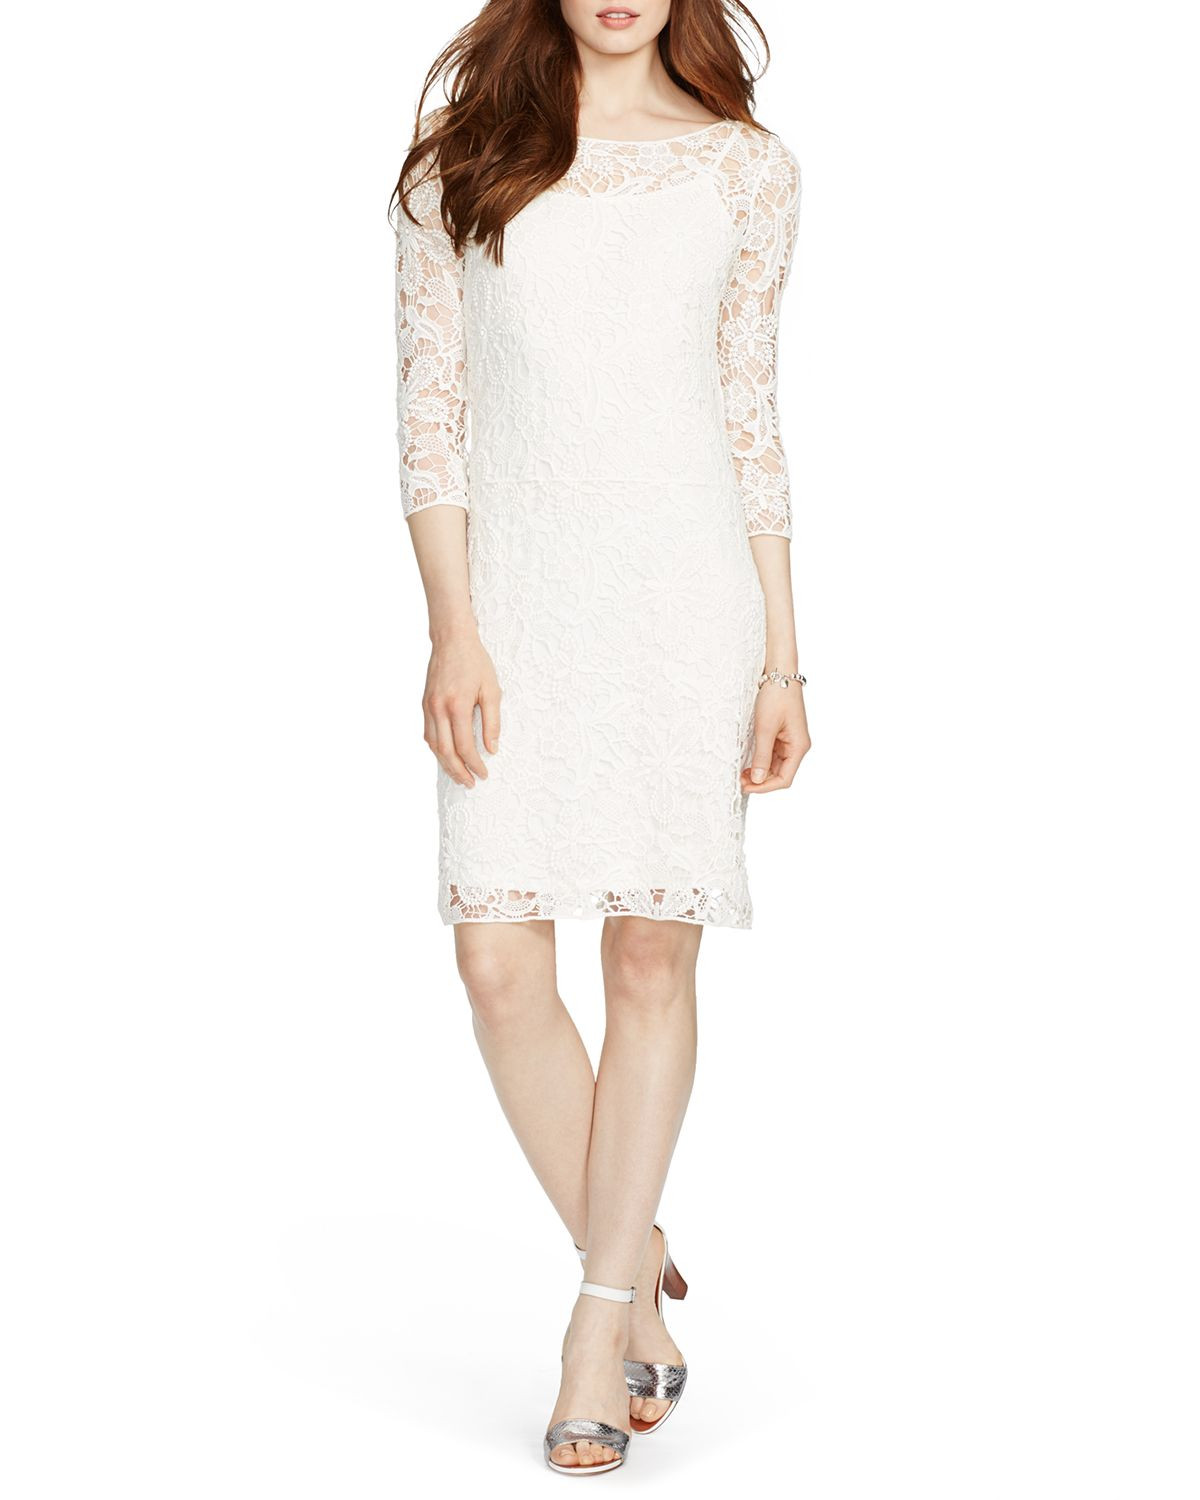 Unique Lyst Ralph Lauren Lauren Dress Crochet Lace In White Crochet Trim Dresses Of Attractive 47 Images Crochet Trim Dresses